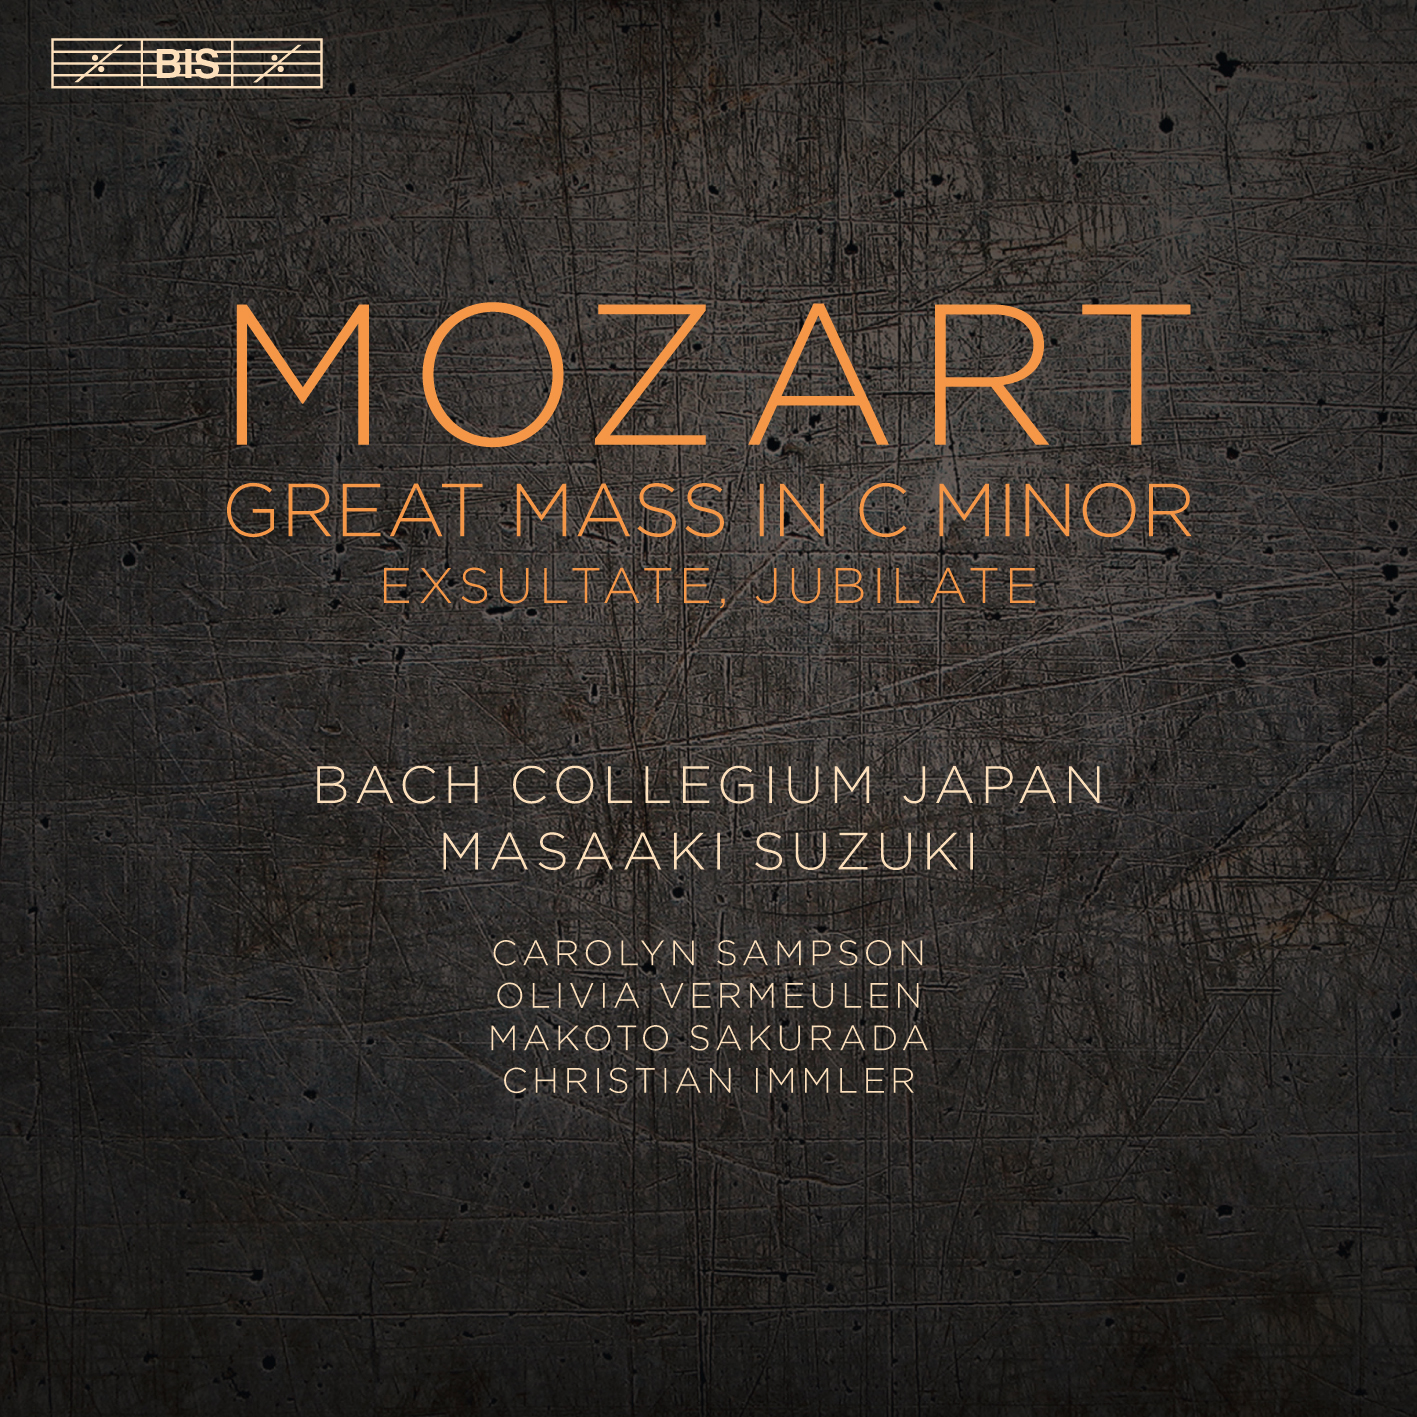 Mozart: Great Mass in C-Minor Exsultate Jubilate Masaaki Suzuki Bach Collegium Japan BIS 2016 24/96